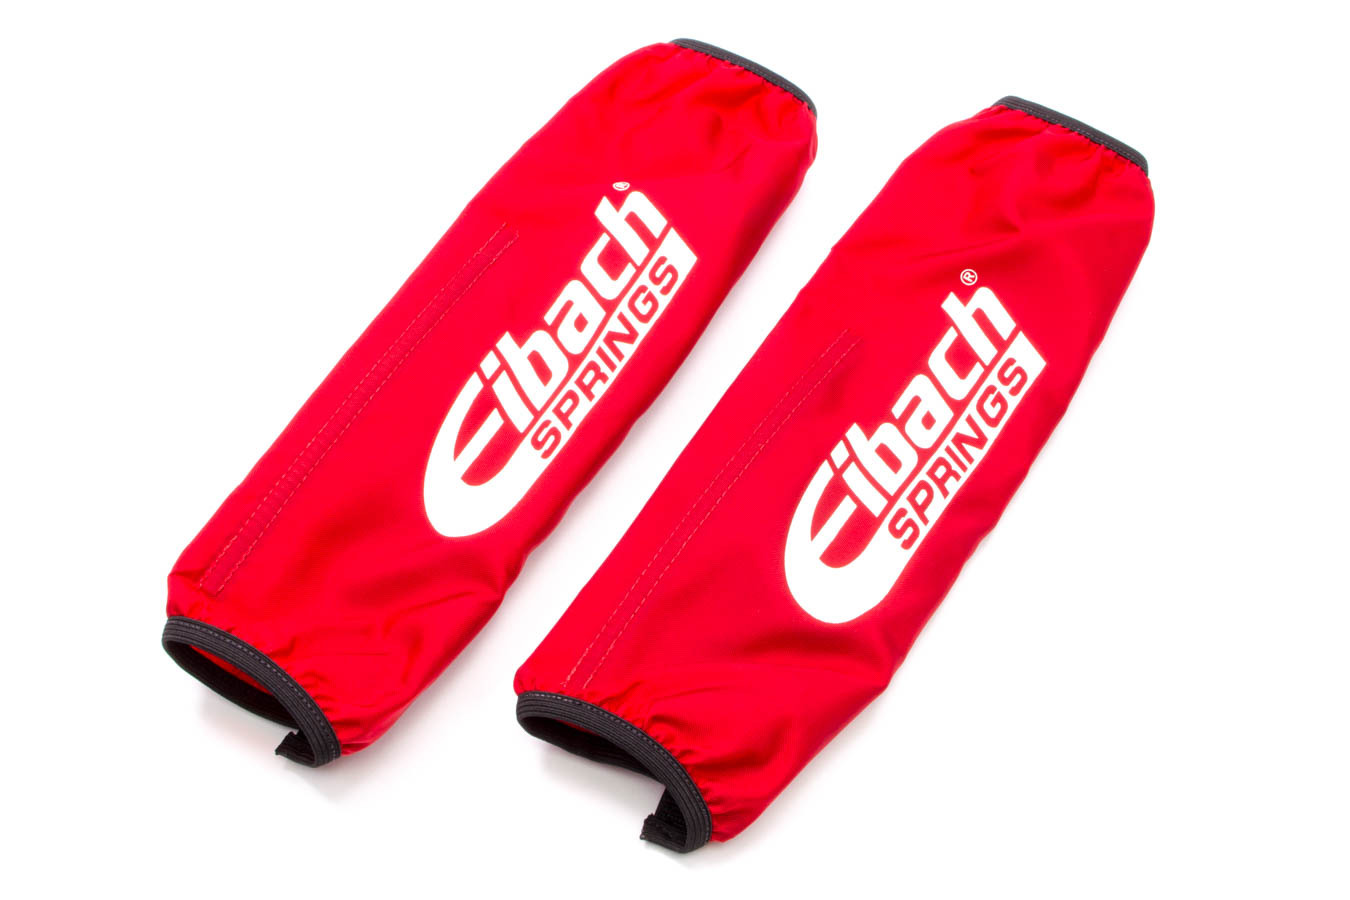 Eibach ESB12-250 Shock Cover, 10-12 in Long, 2.500 in ID Coil-Over, Elastic Ends, Hook and Loop Closure, Nylon, Red, Eibach Shocks, Pair